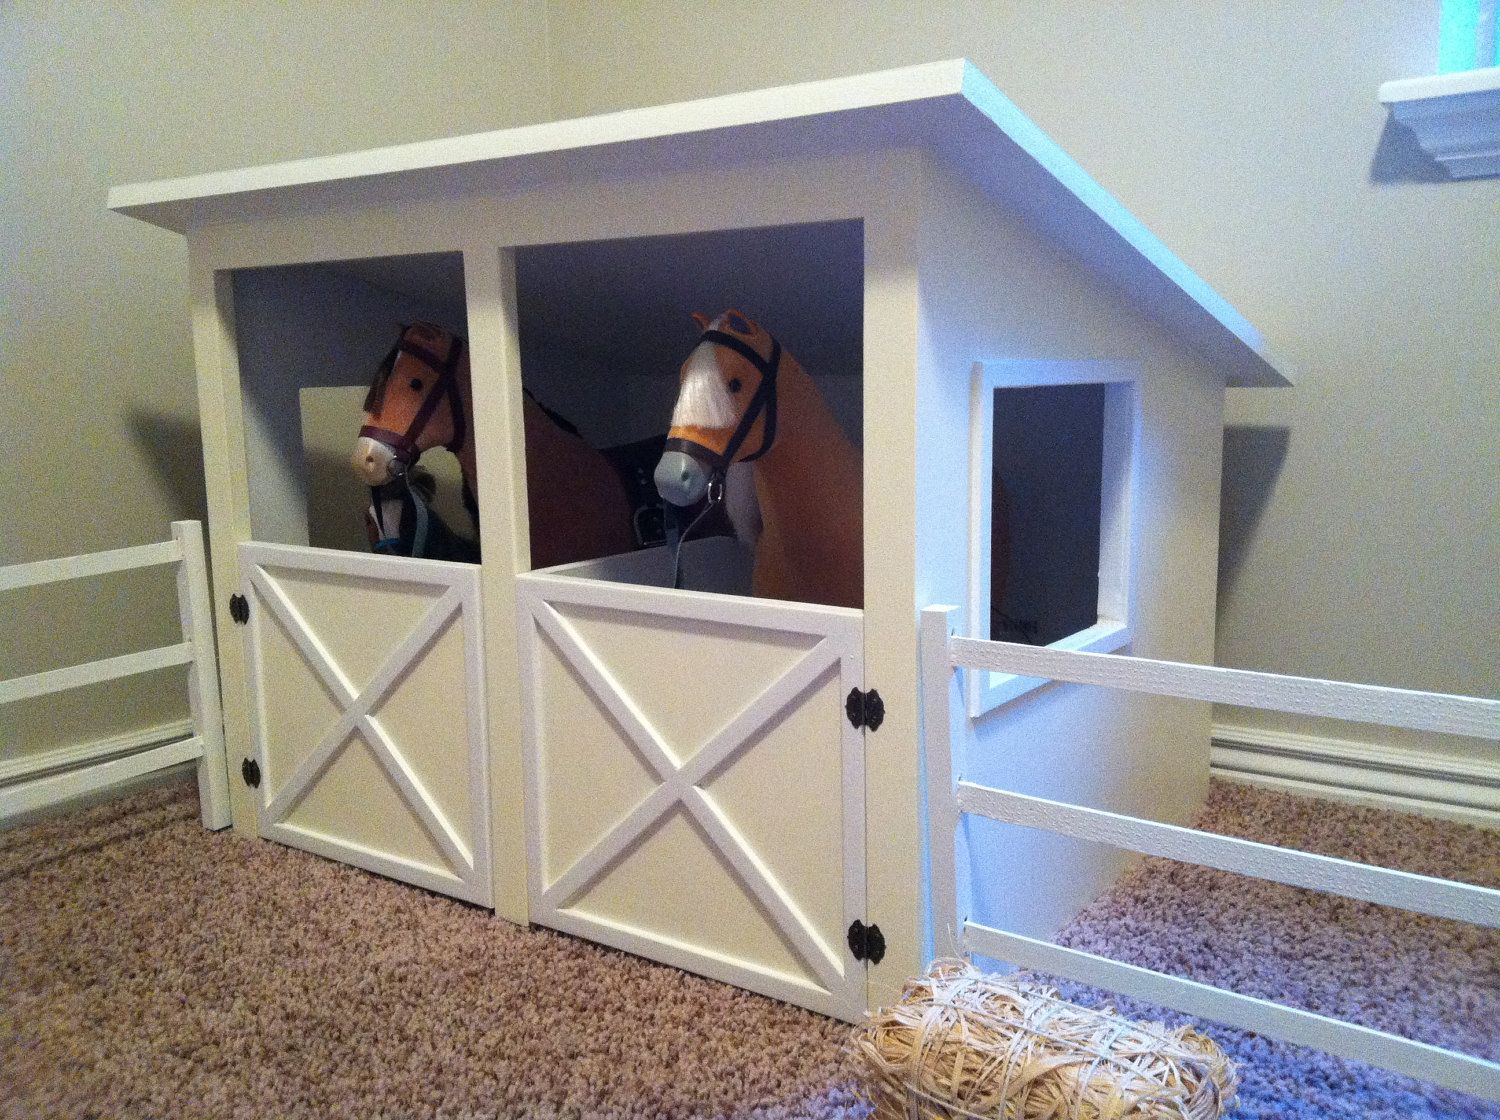 Doll Horse Stable and Fence Plans for American Girl or 18 inch dolls - NOT ACTUAL STABLE #americandolls